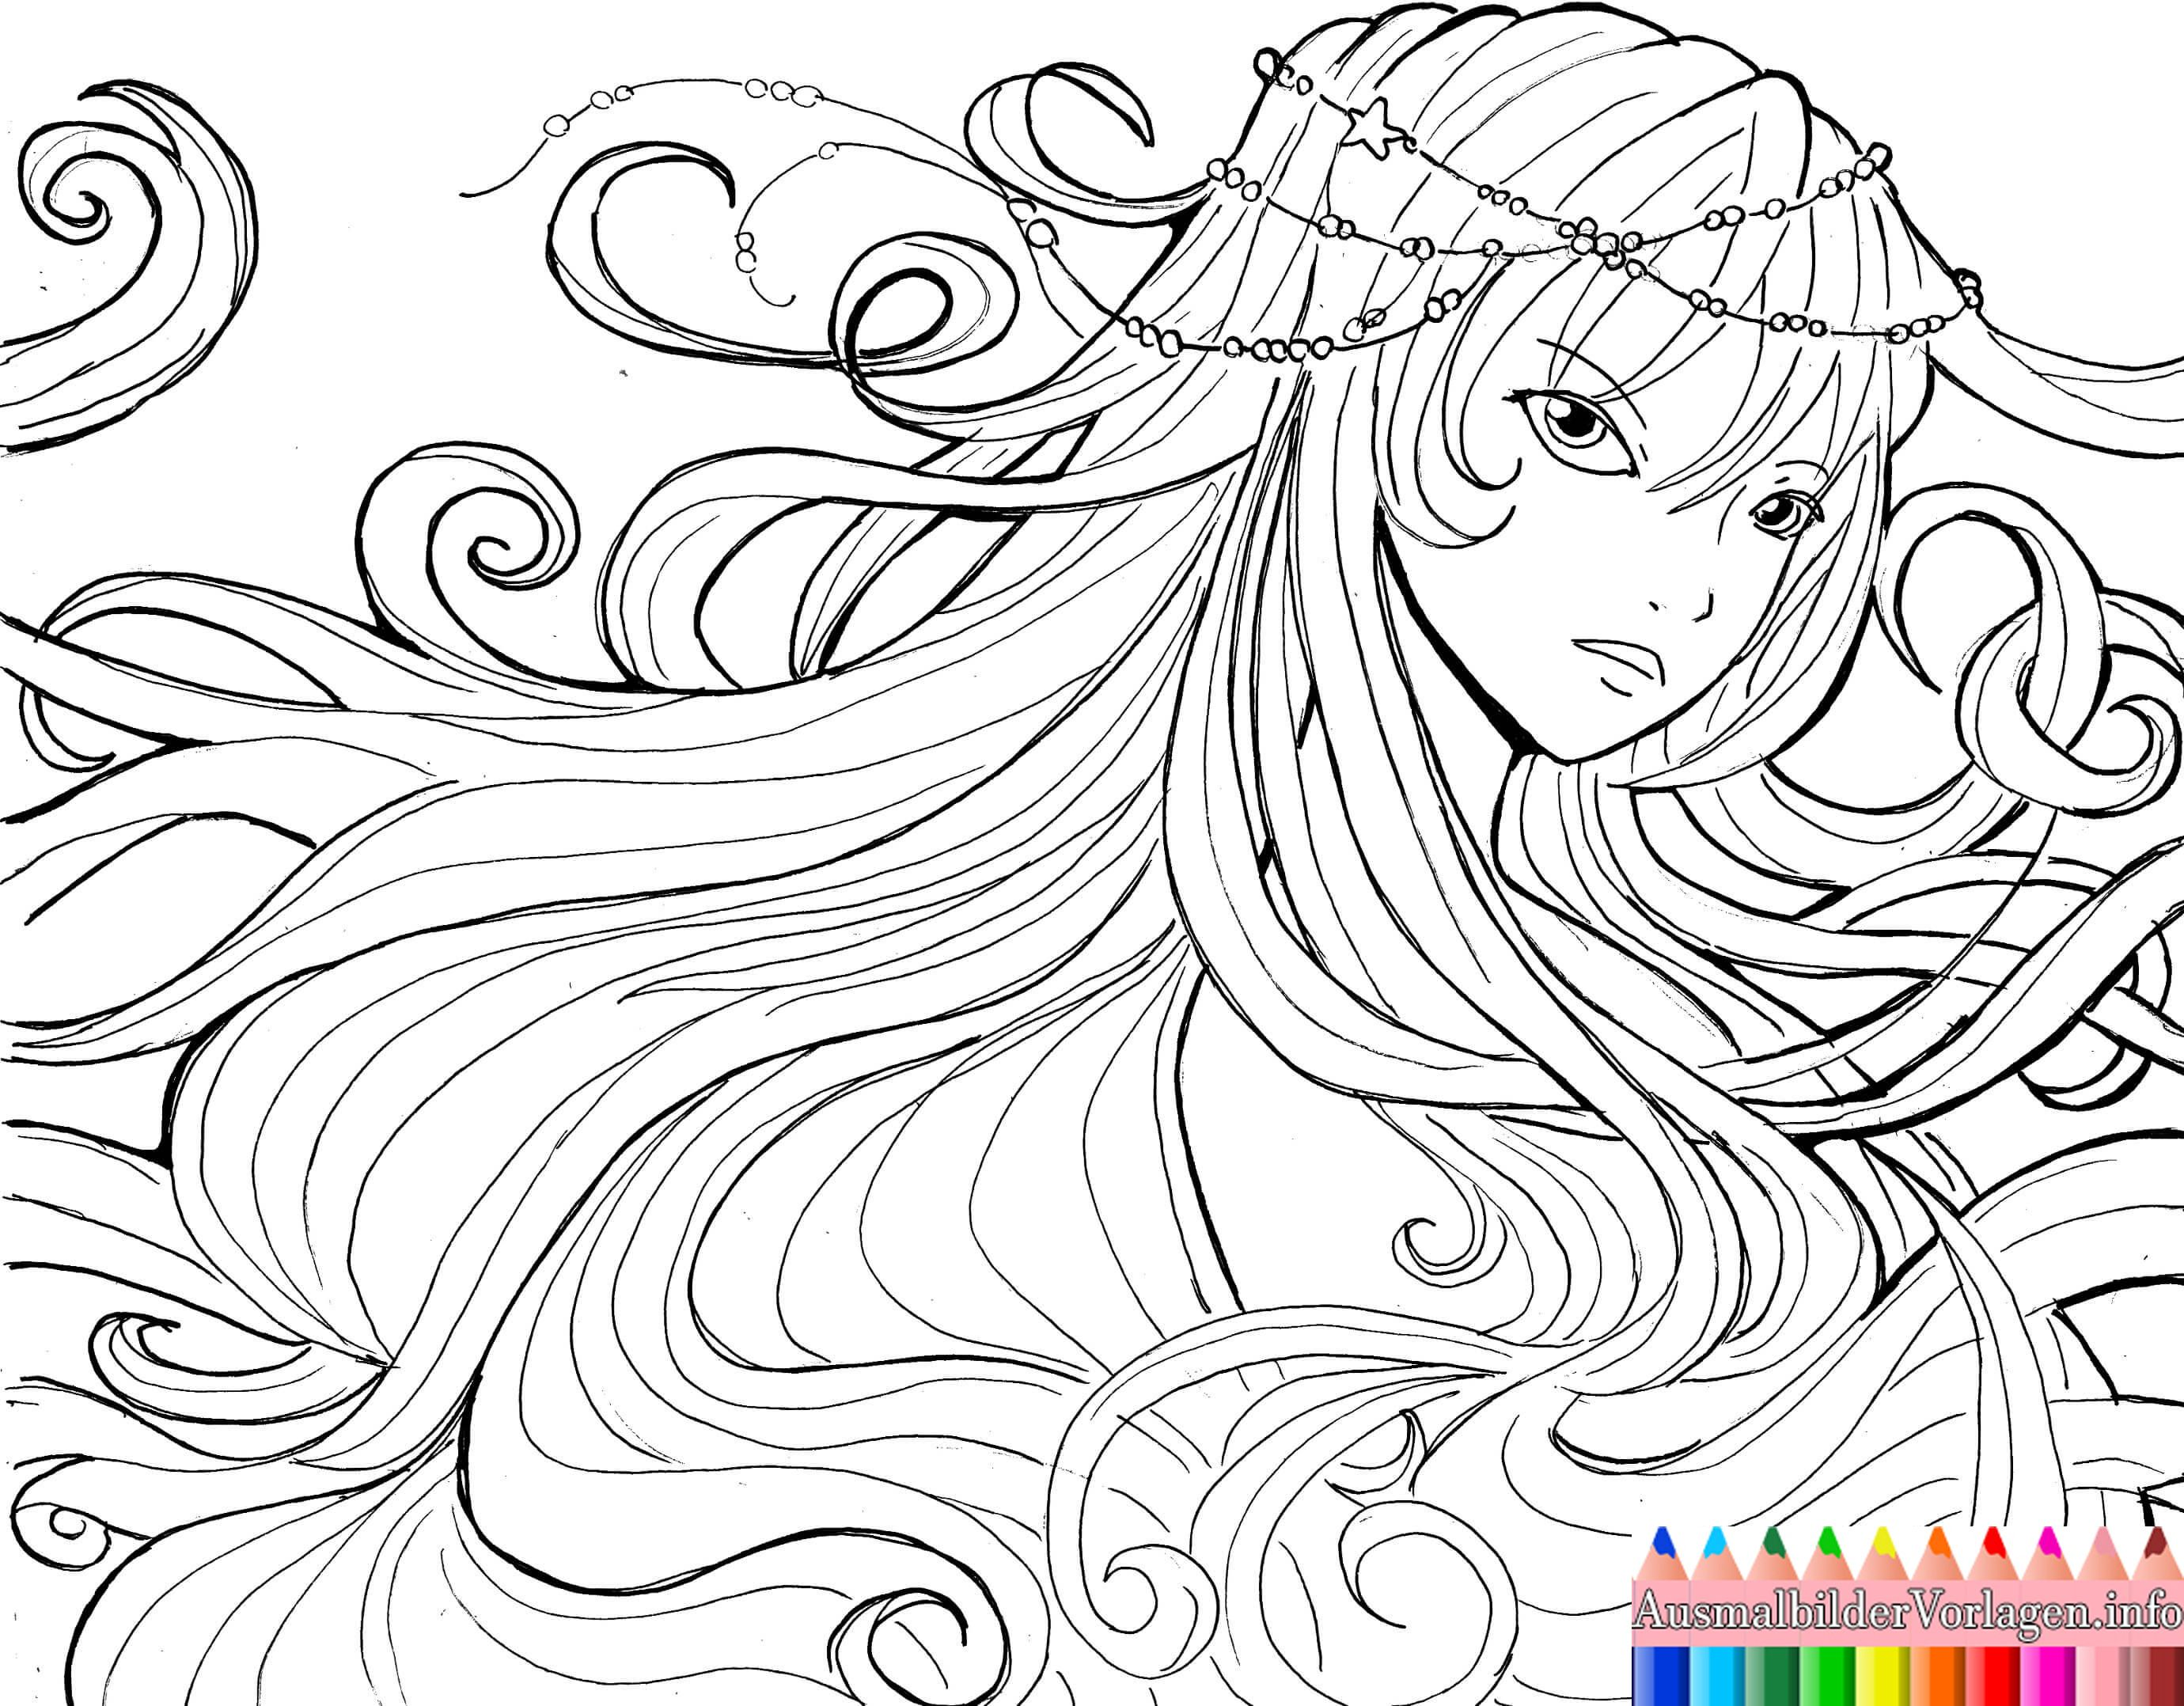 Manga Engel Malvorlage Cartoon Coloring Pages Chibi Coloring Pages Coloring Pages For Girls